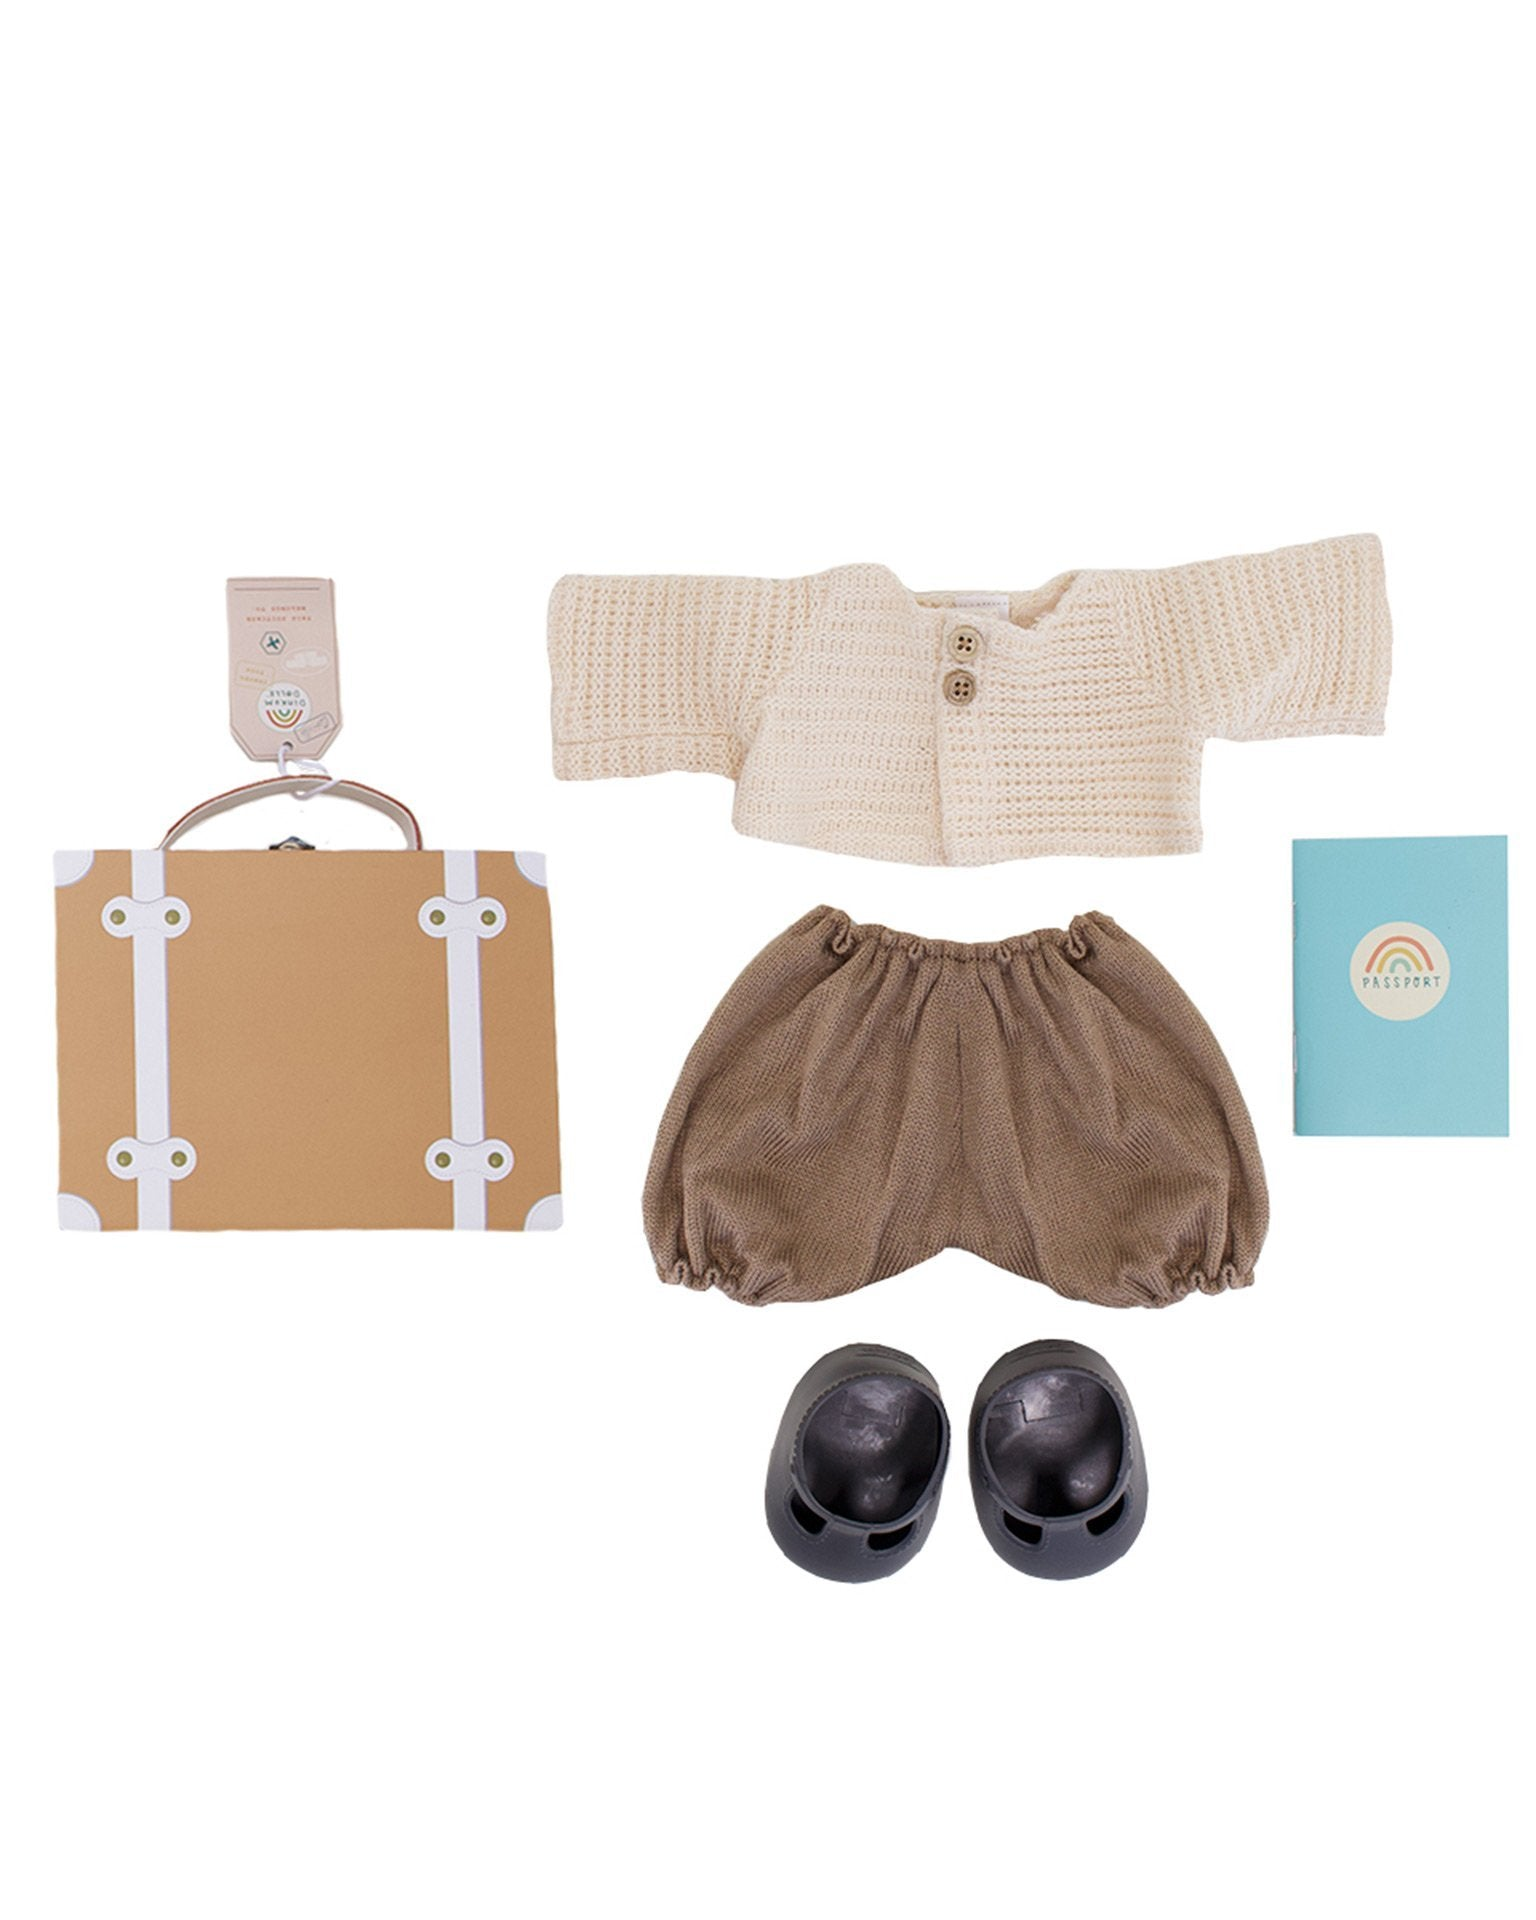 Little olli ella usa play dinkum doll travel togs in rust